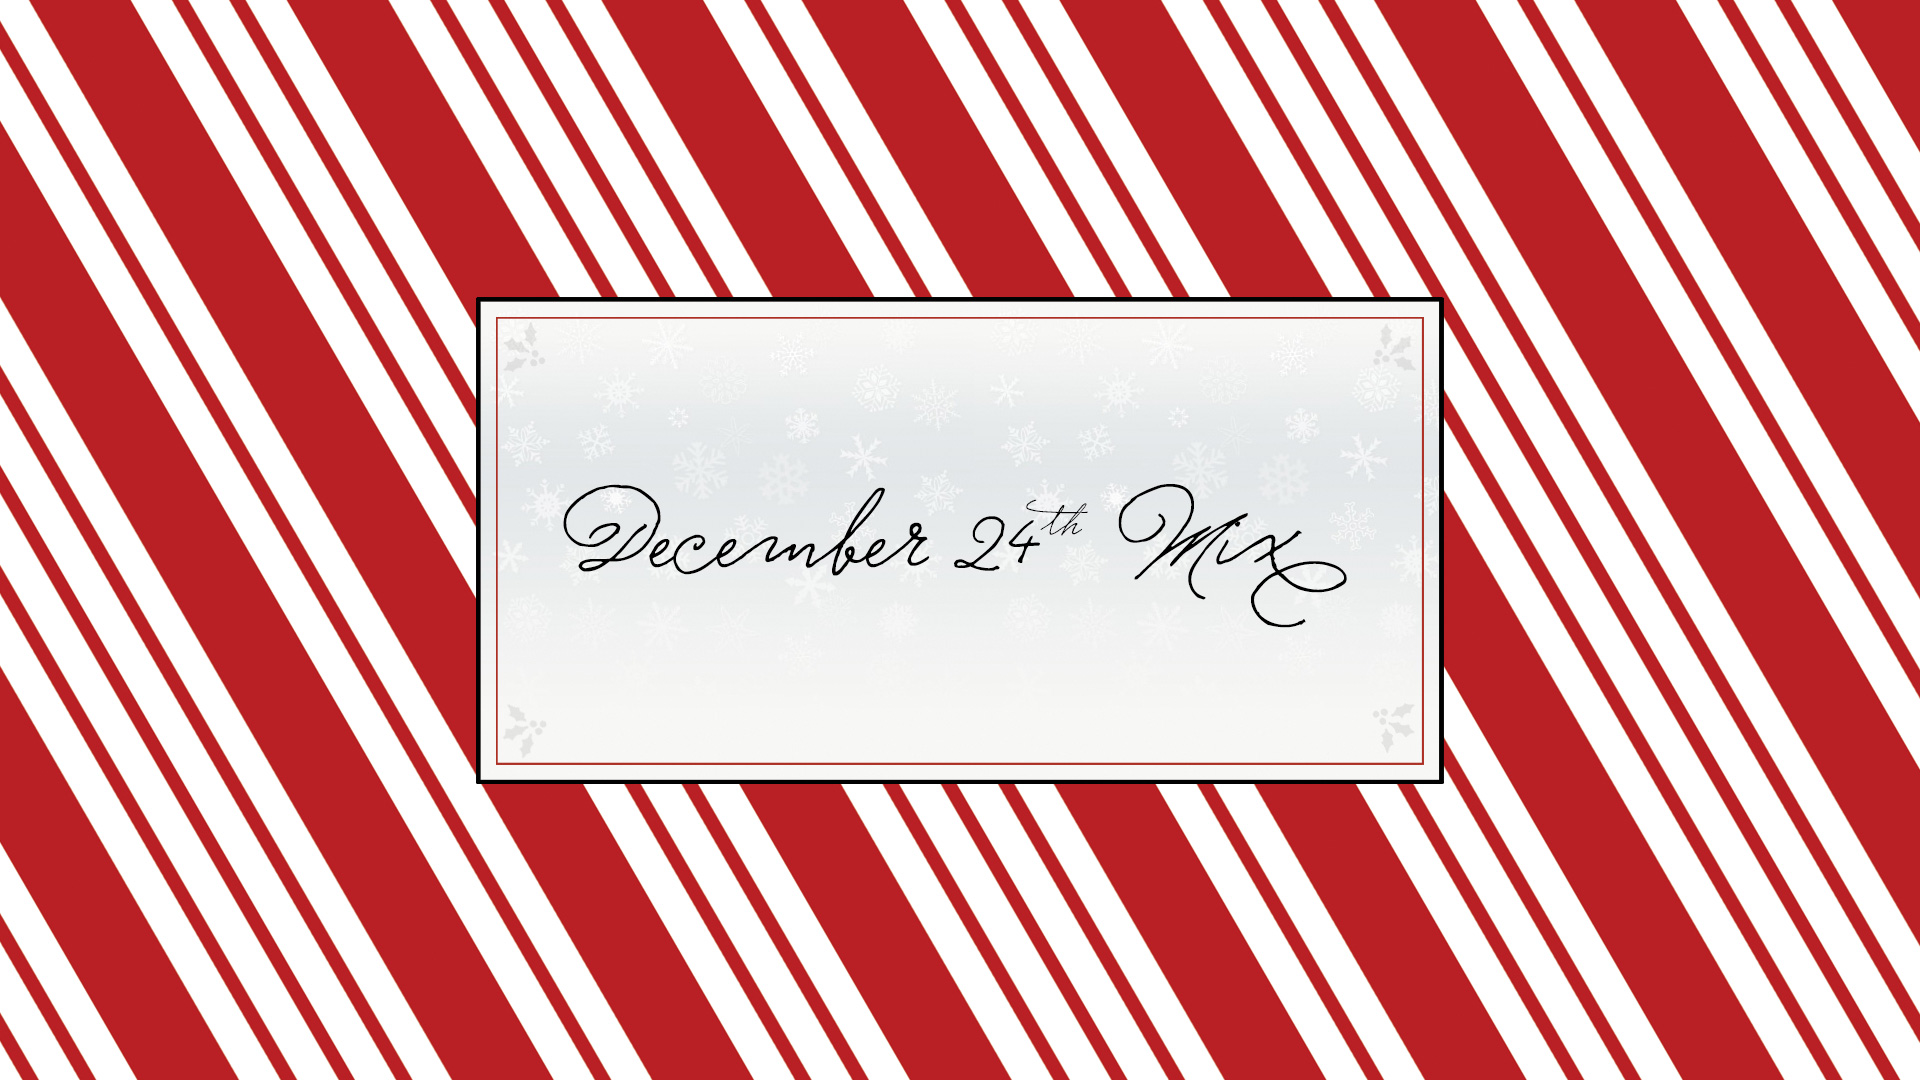 December 24th Mix - An annual holiday mix CD